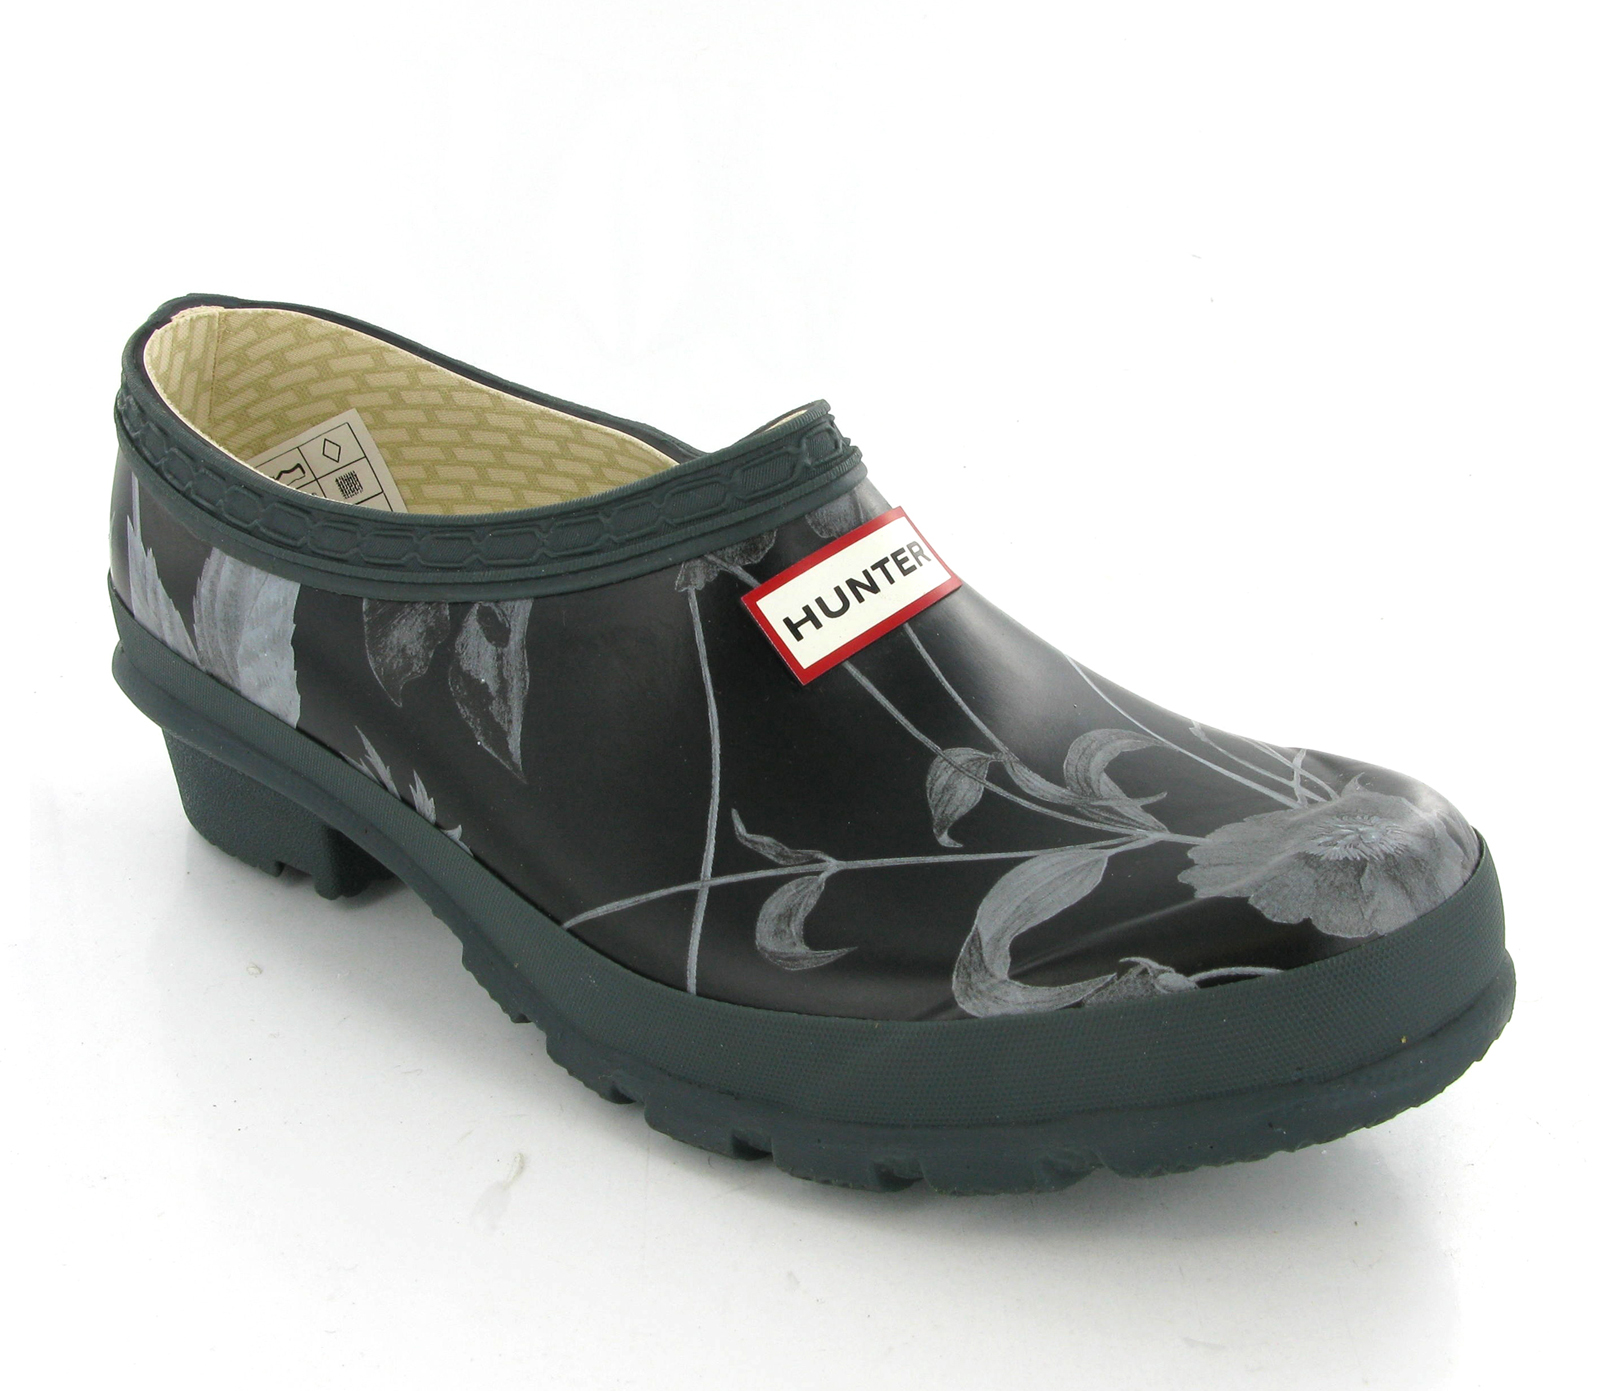 New Womens RHS Hunter Gardening Clogs Grey Black Wellington Shoes